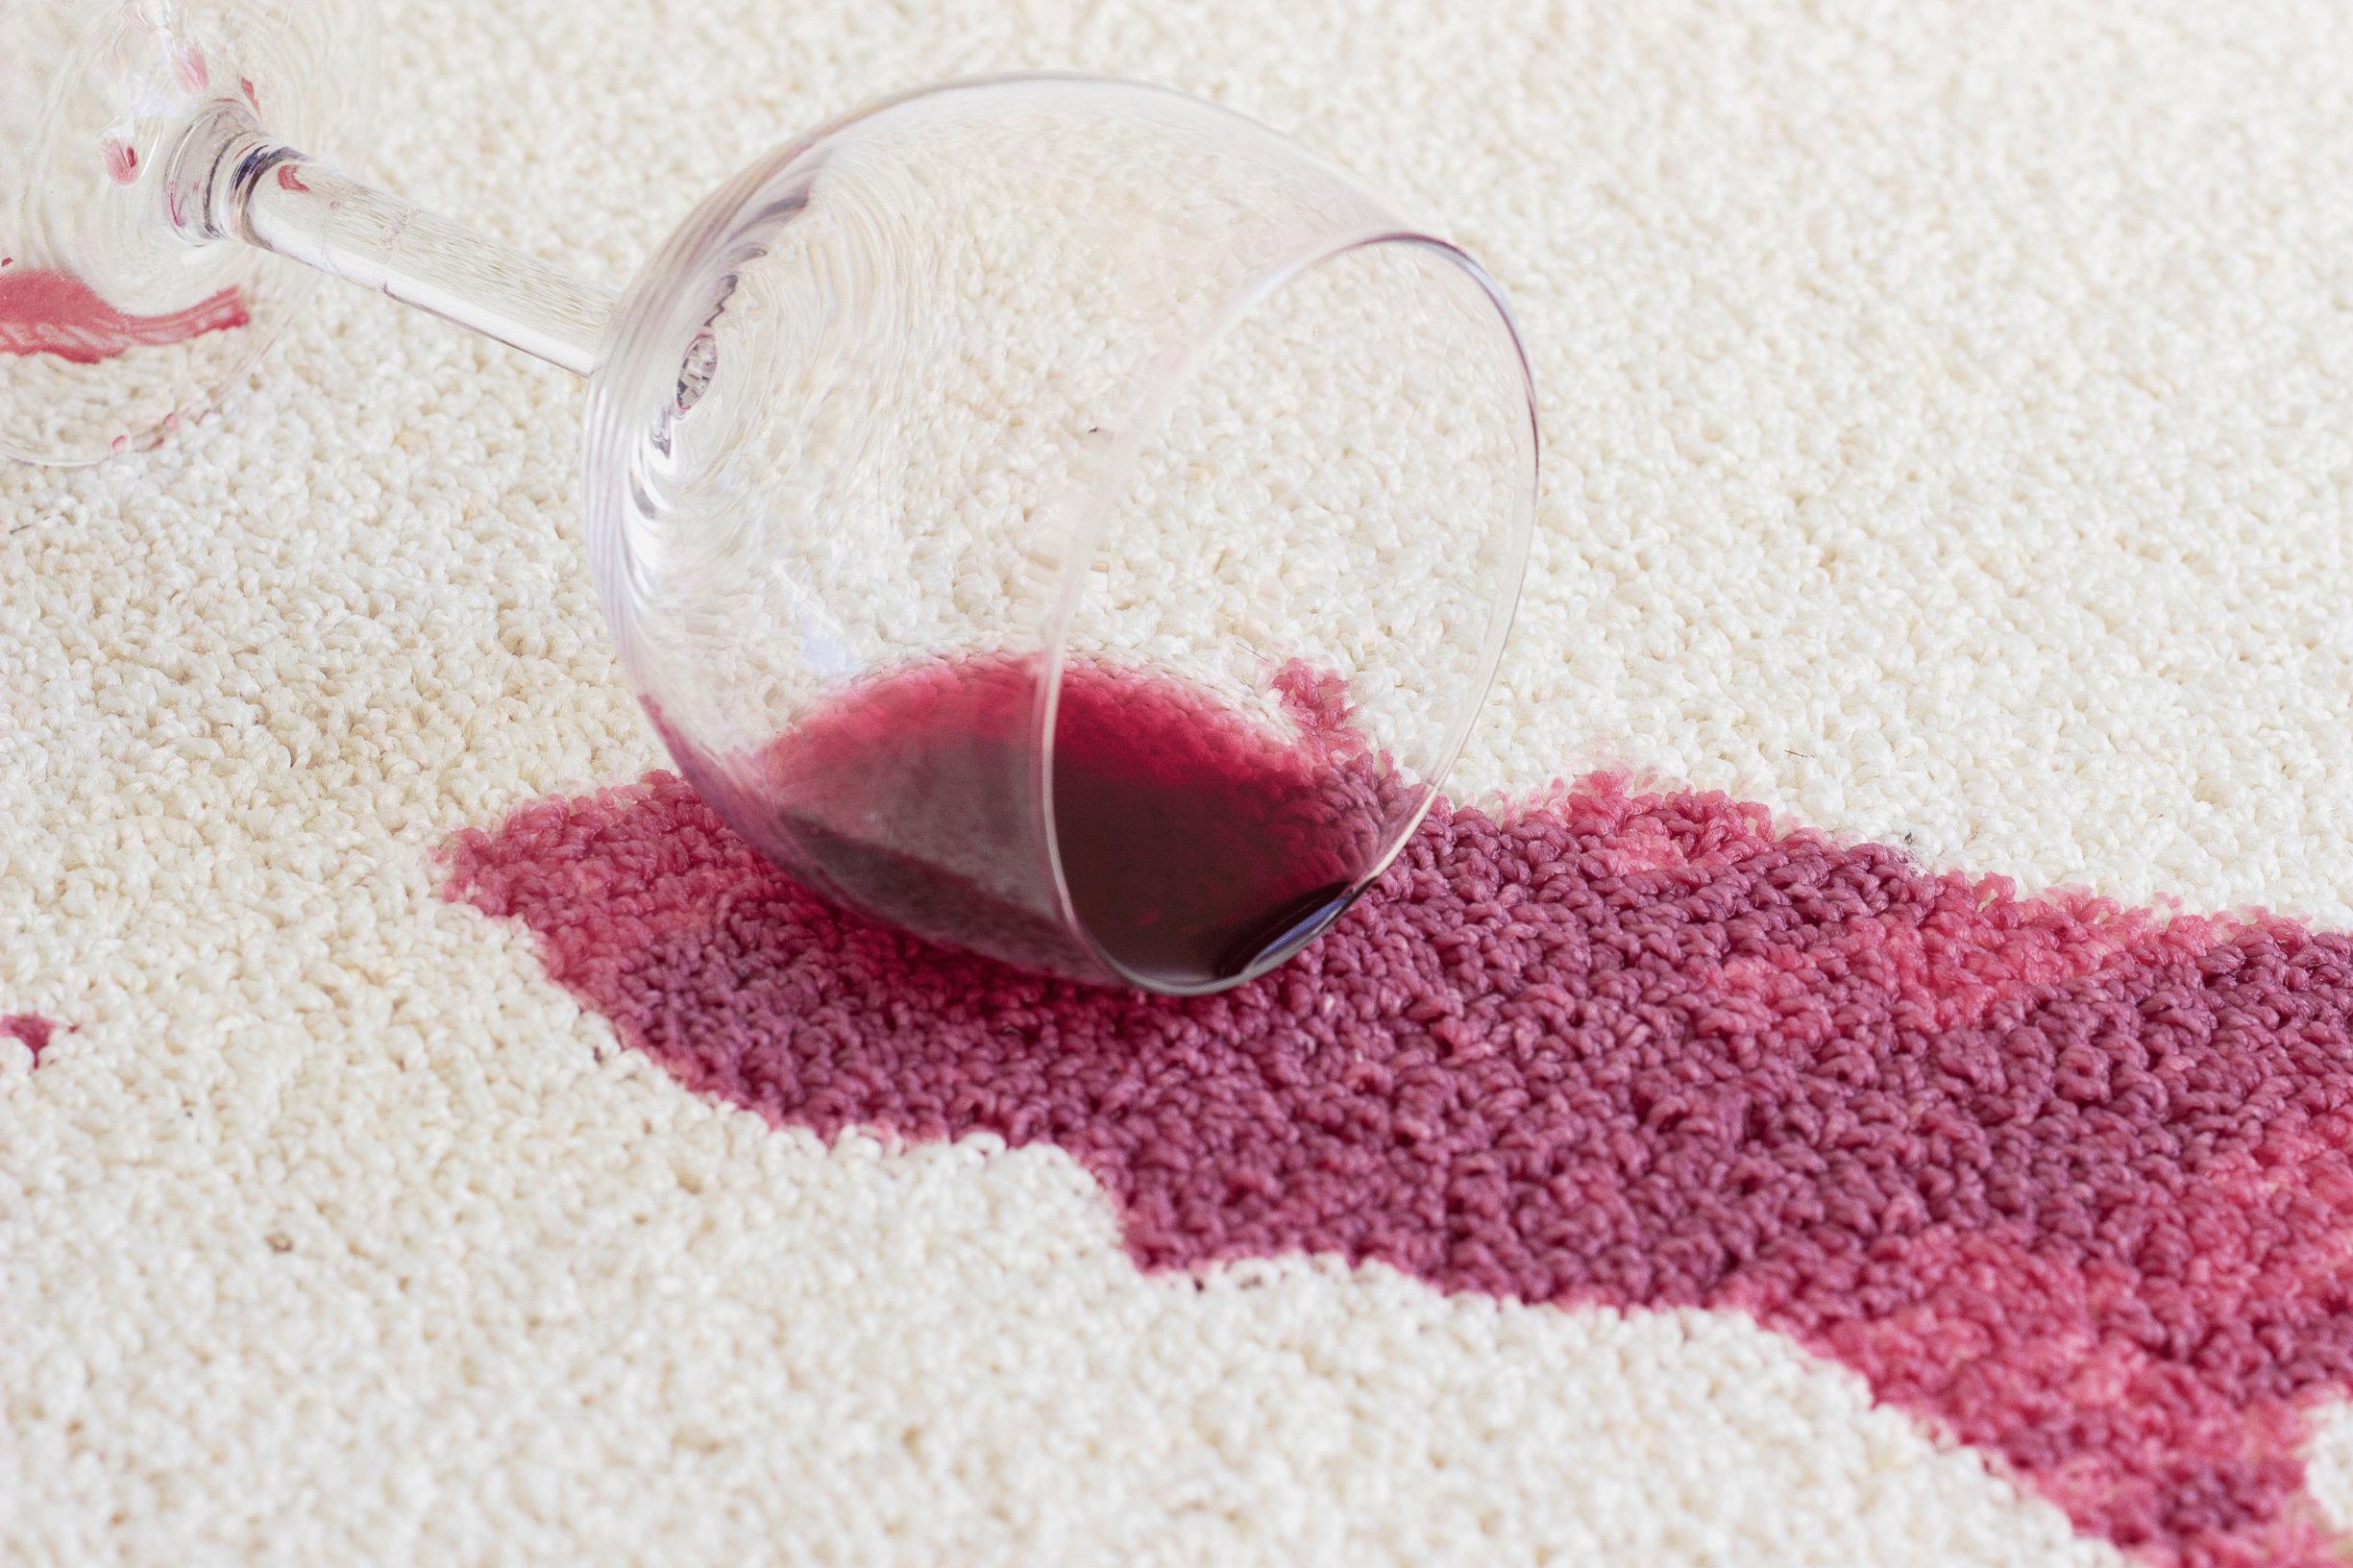 Help! I've spilled red wine on my carpet, what do I do?